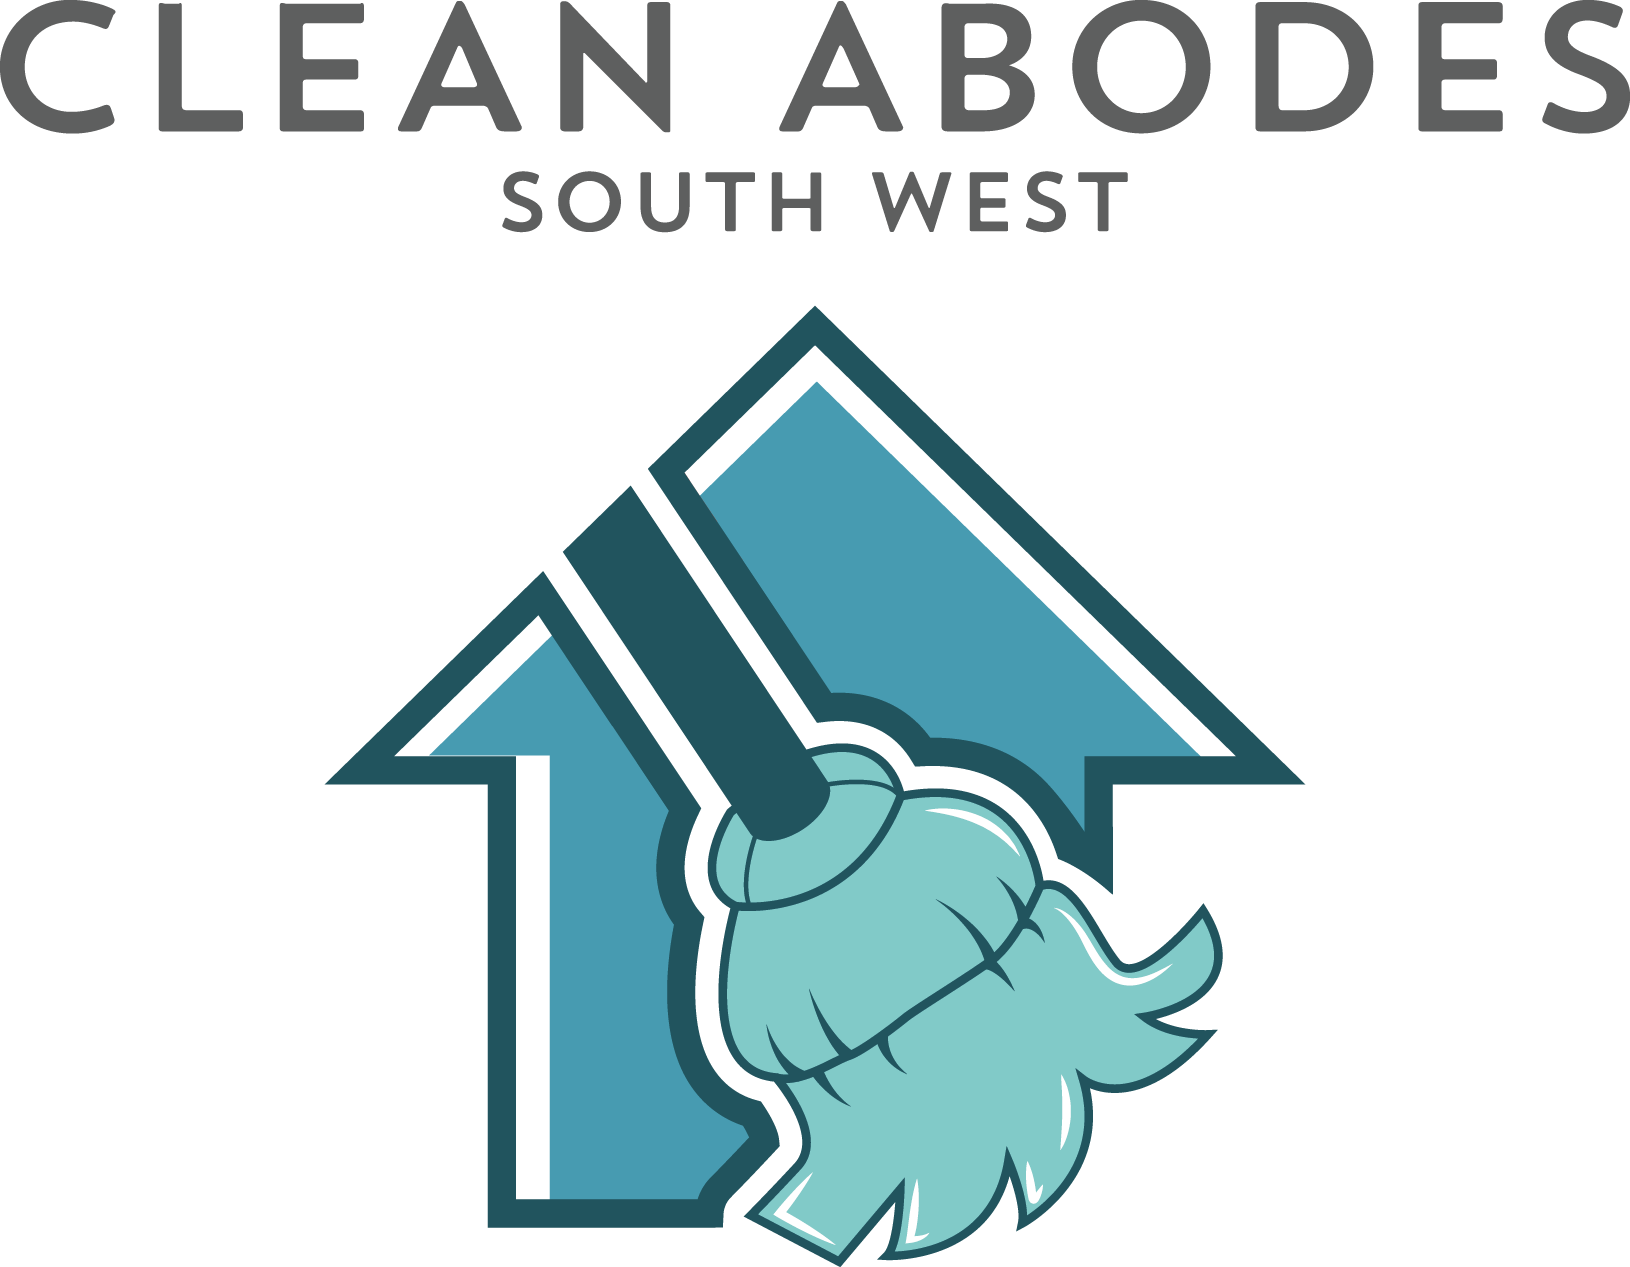 Clean Abodes South West